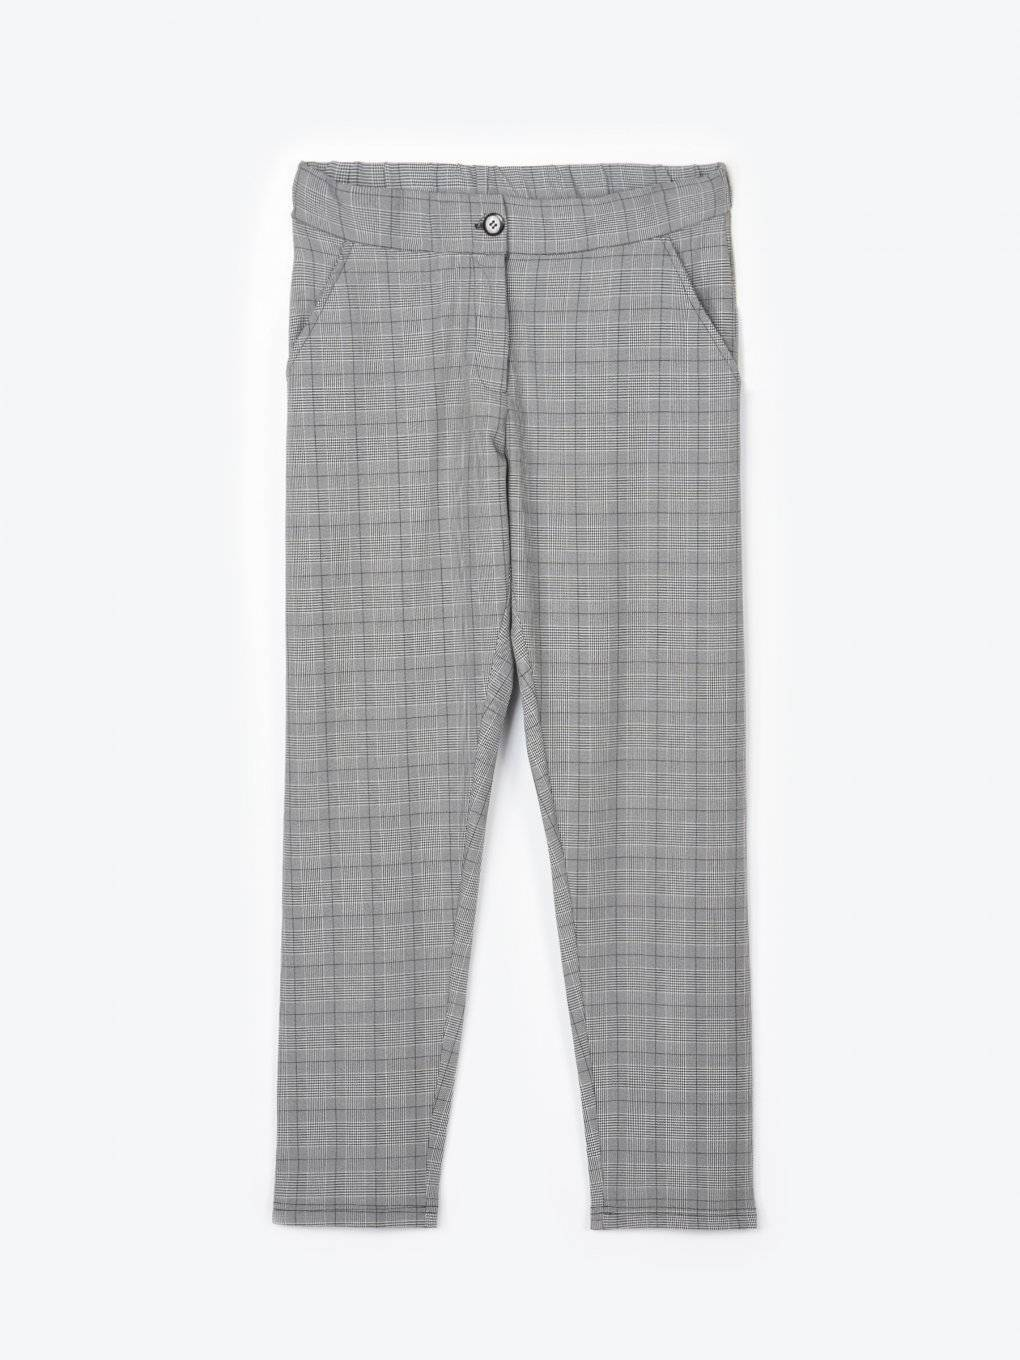 Plaid straight fit stretchy trousers